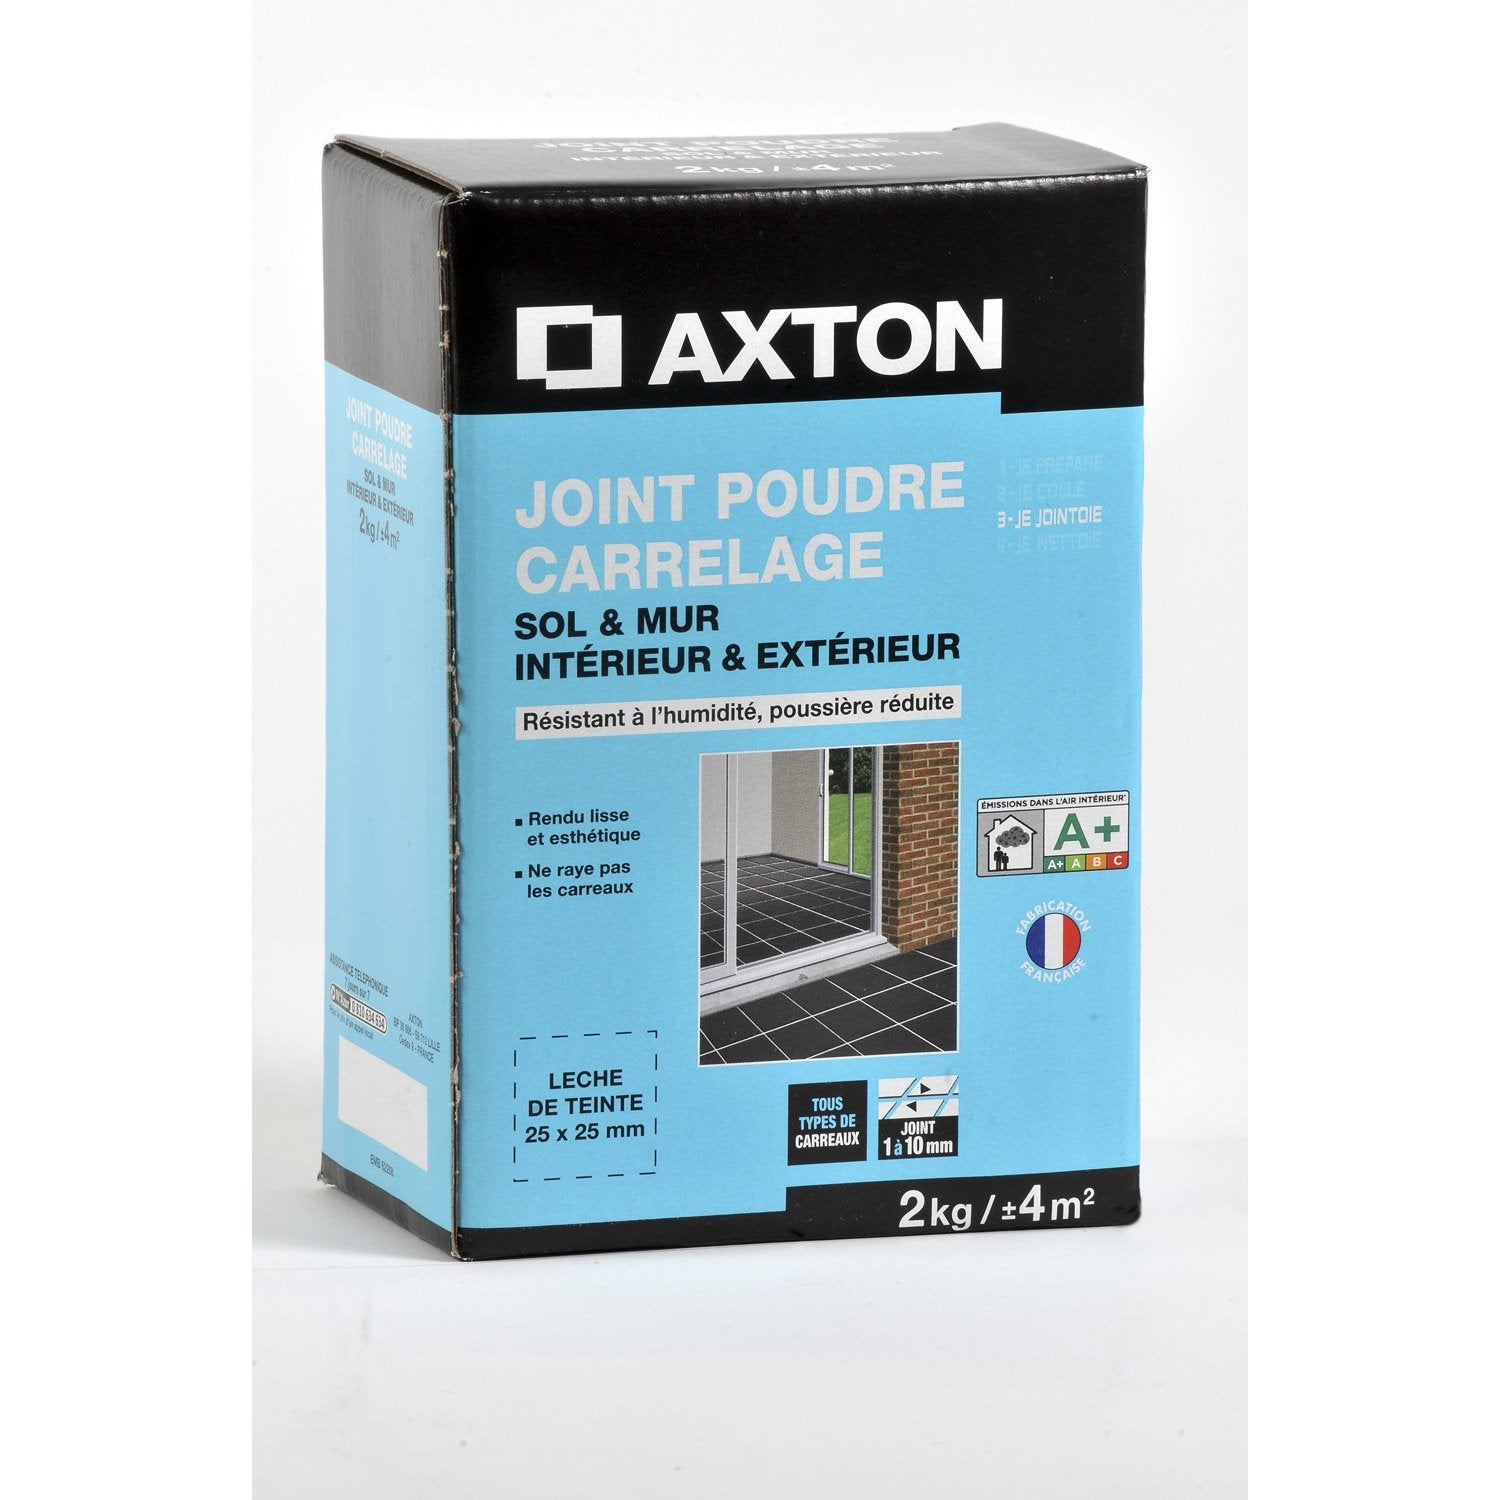 Carrelage salle de bain beige marron for Nettoyer joint carrelage noir